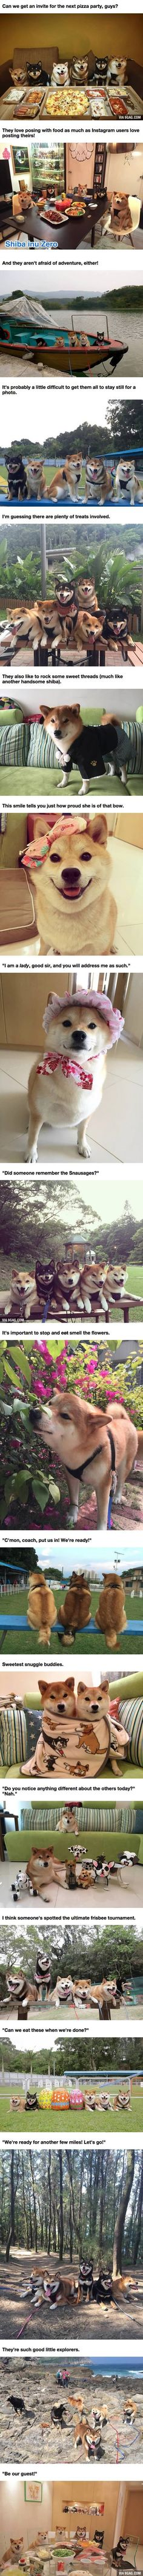 This Doge Family Is The Sweetest Group Of Pups You'll Ever See